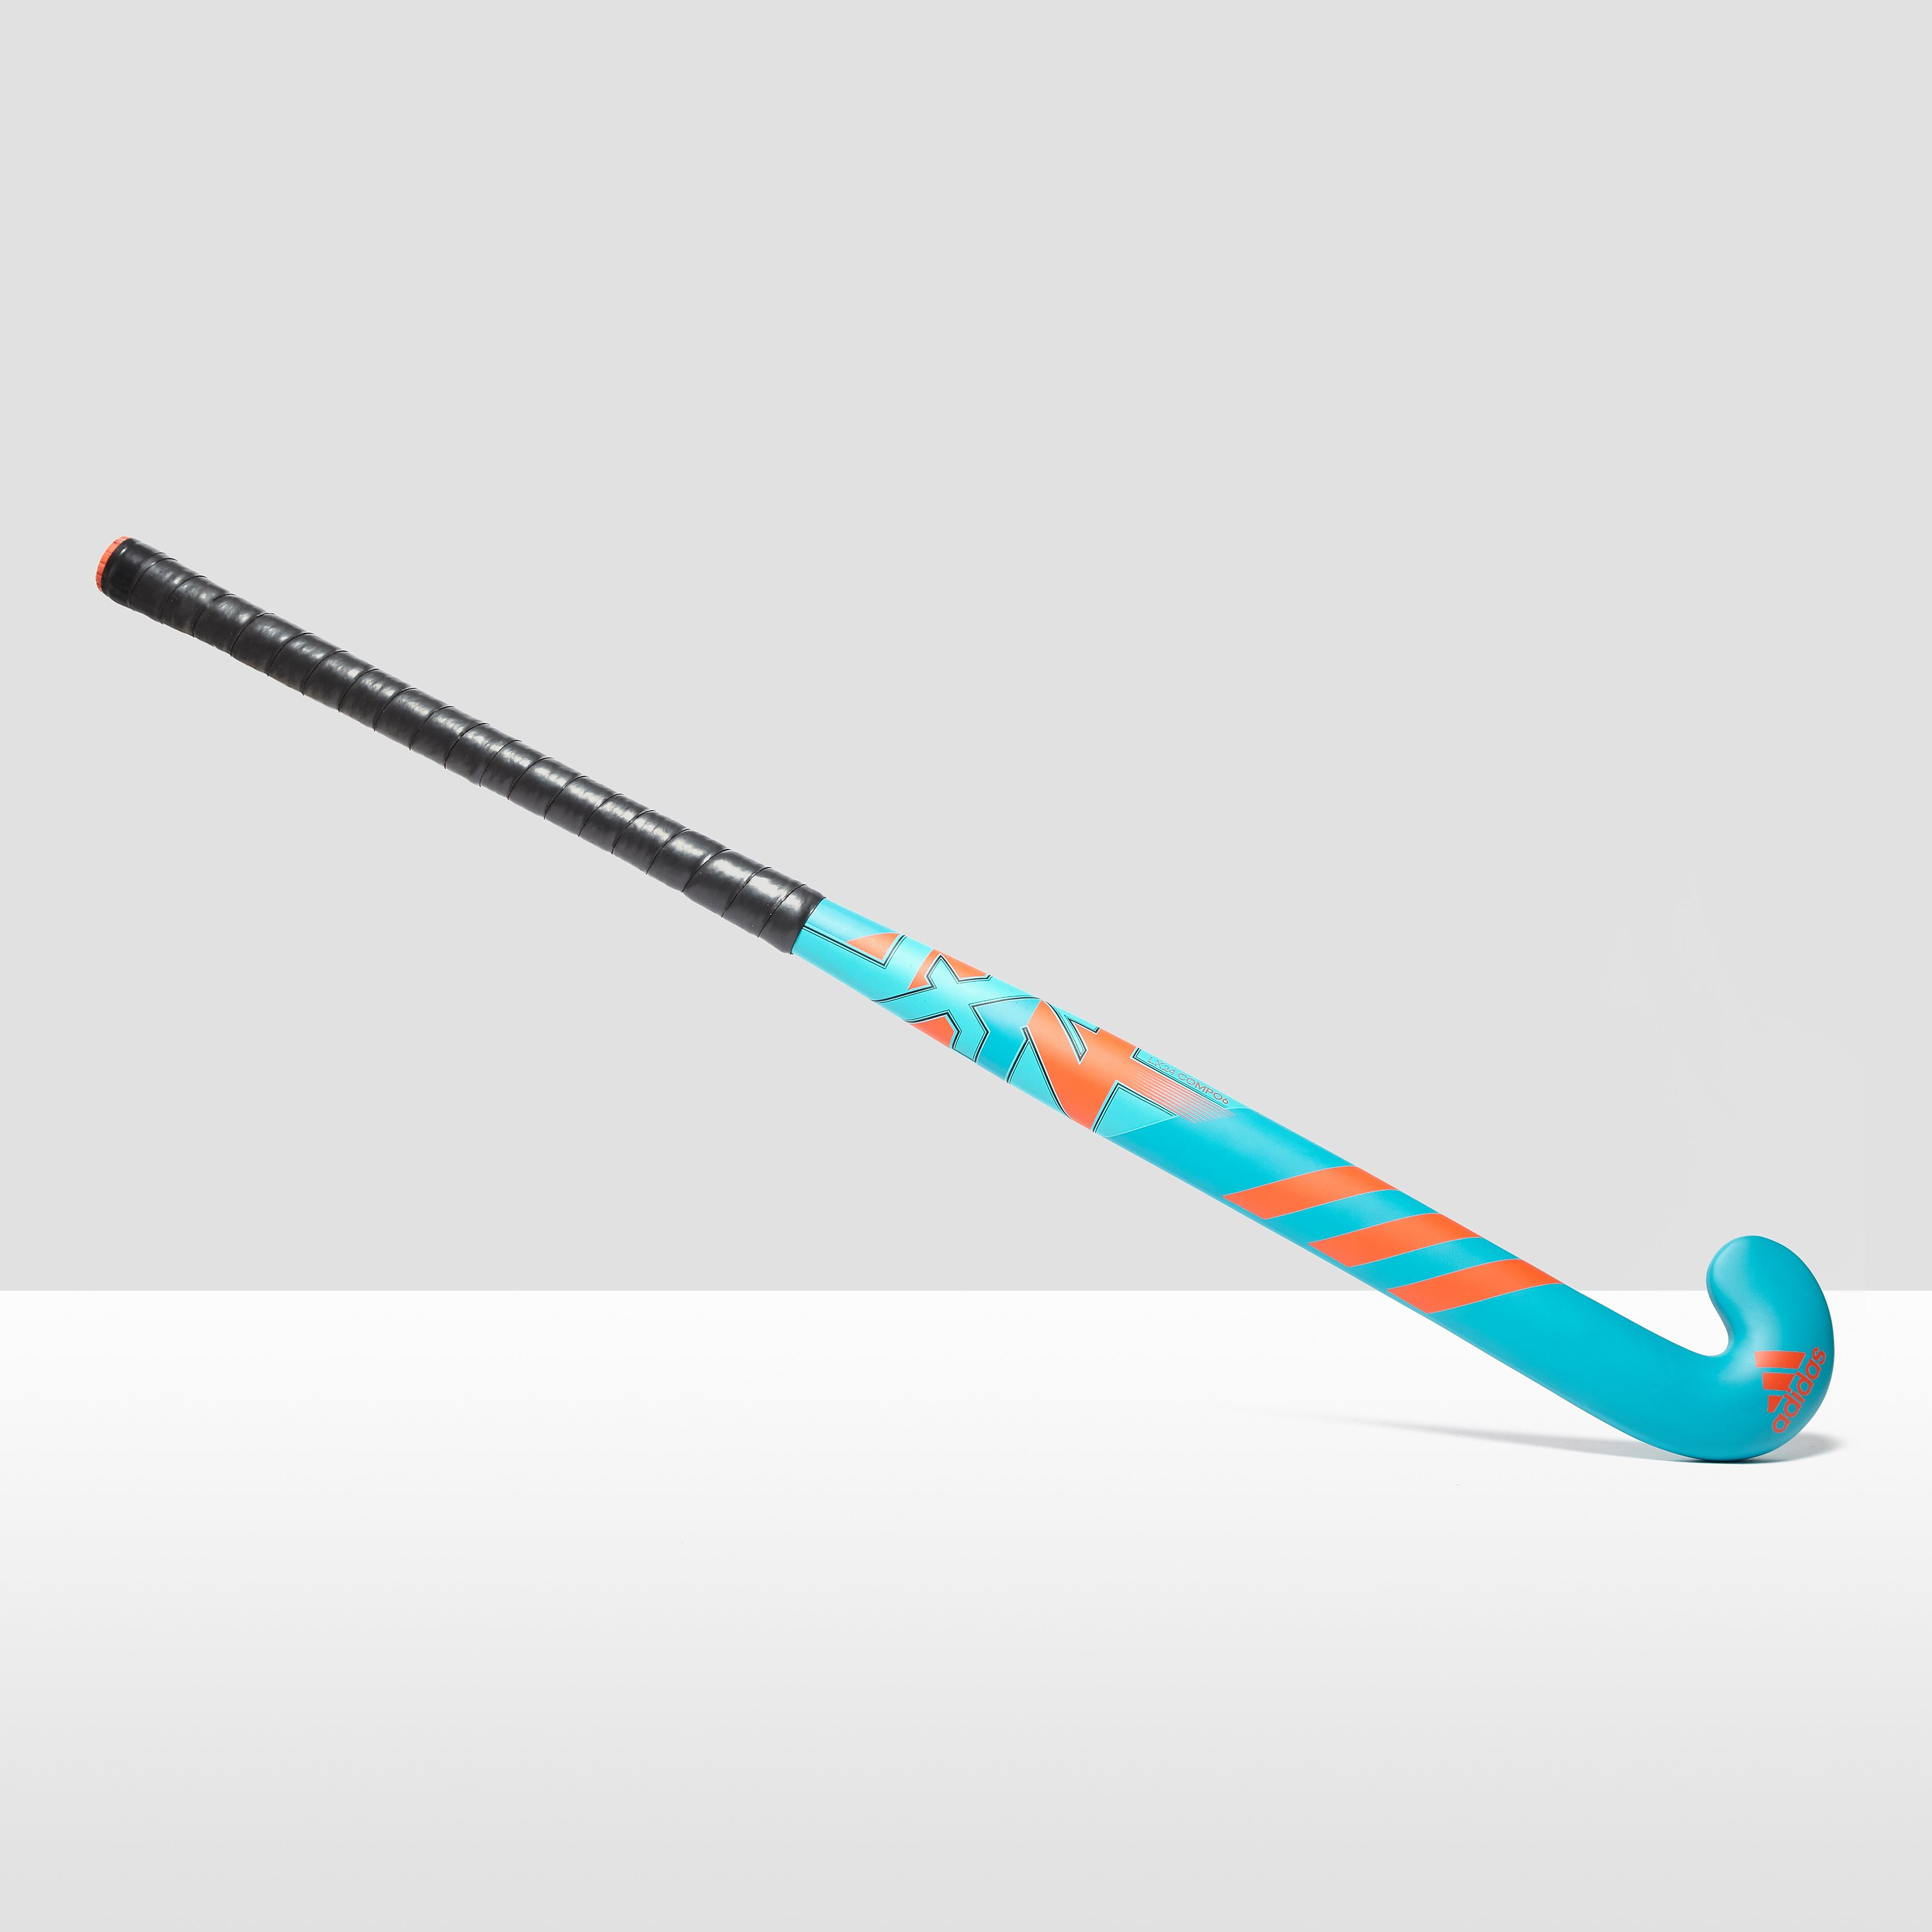 adidas LX24 Compo 6 Hockey Stick